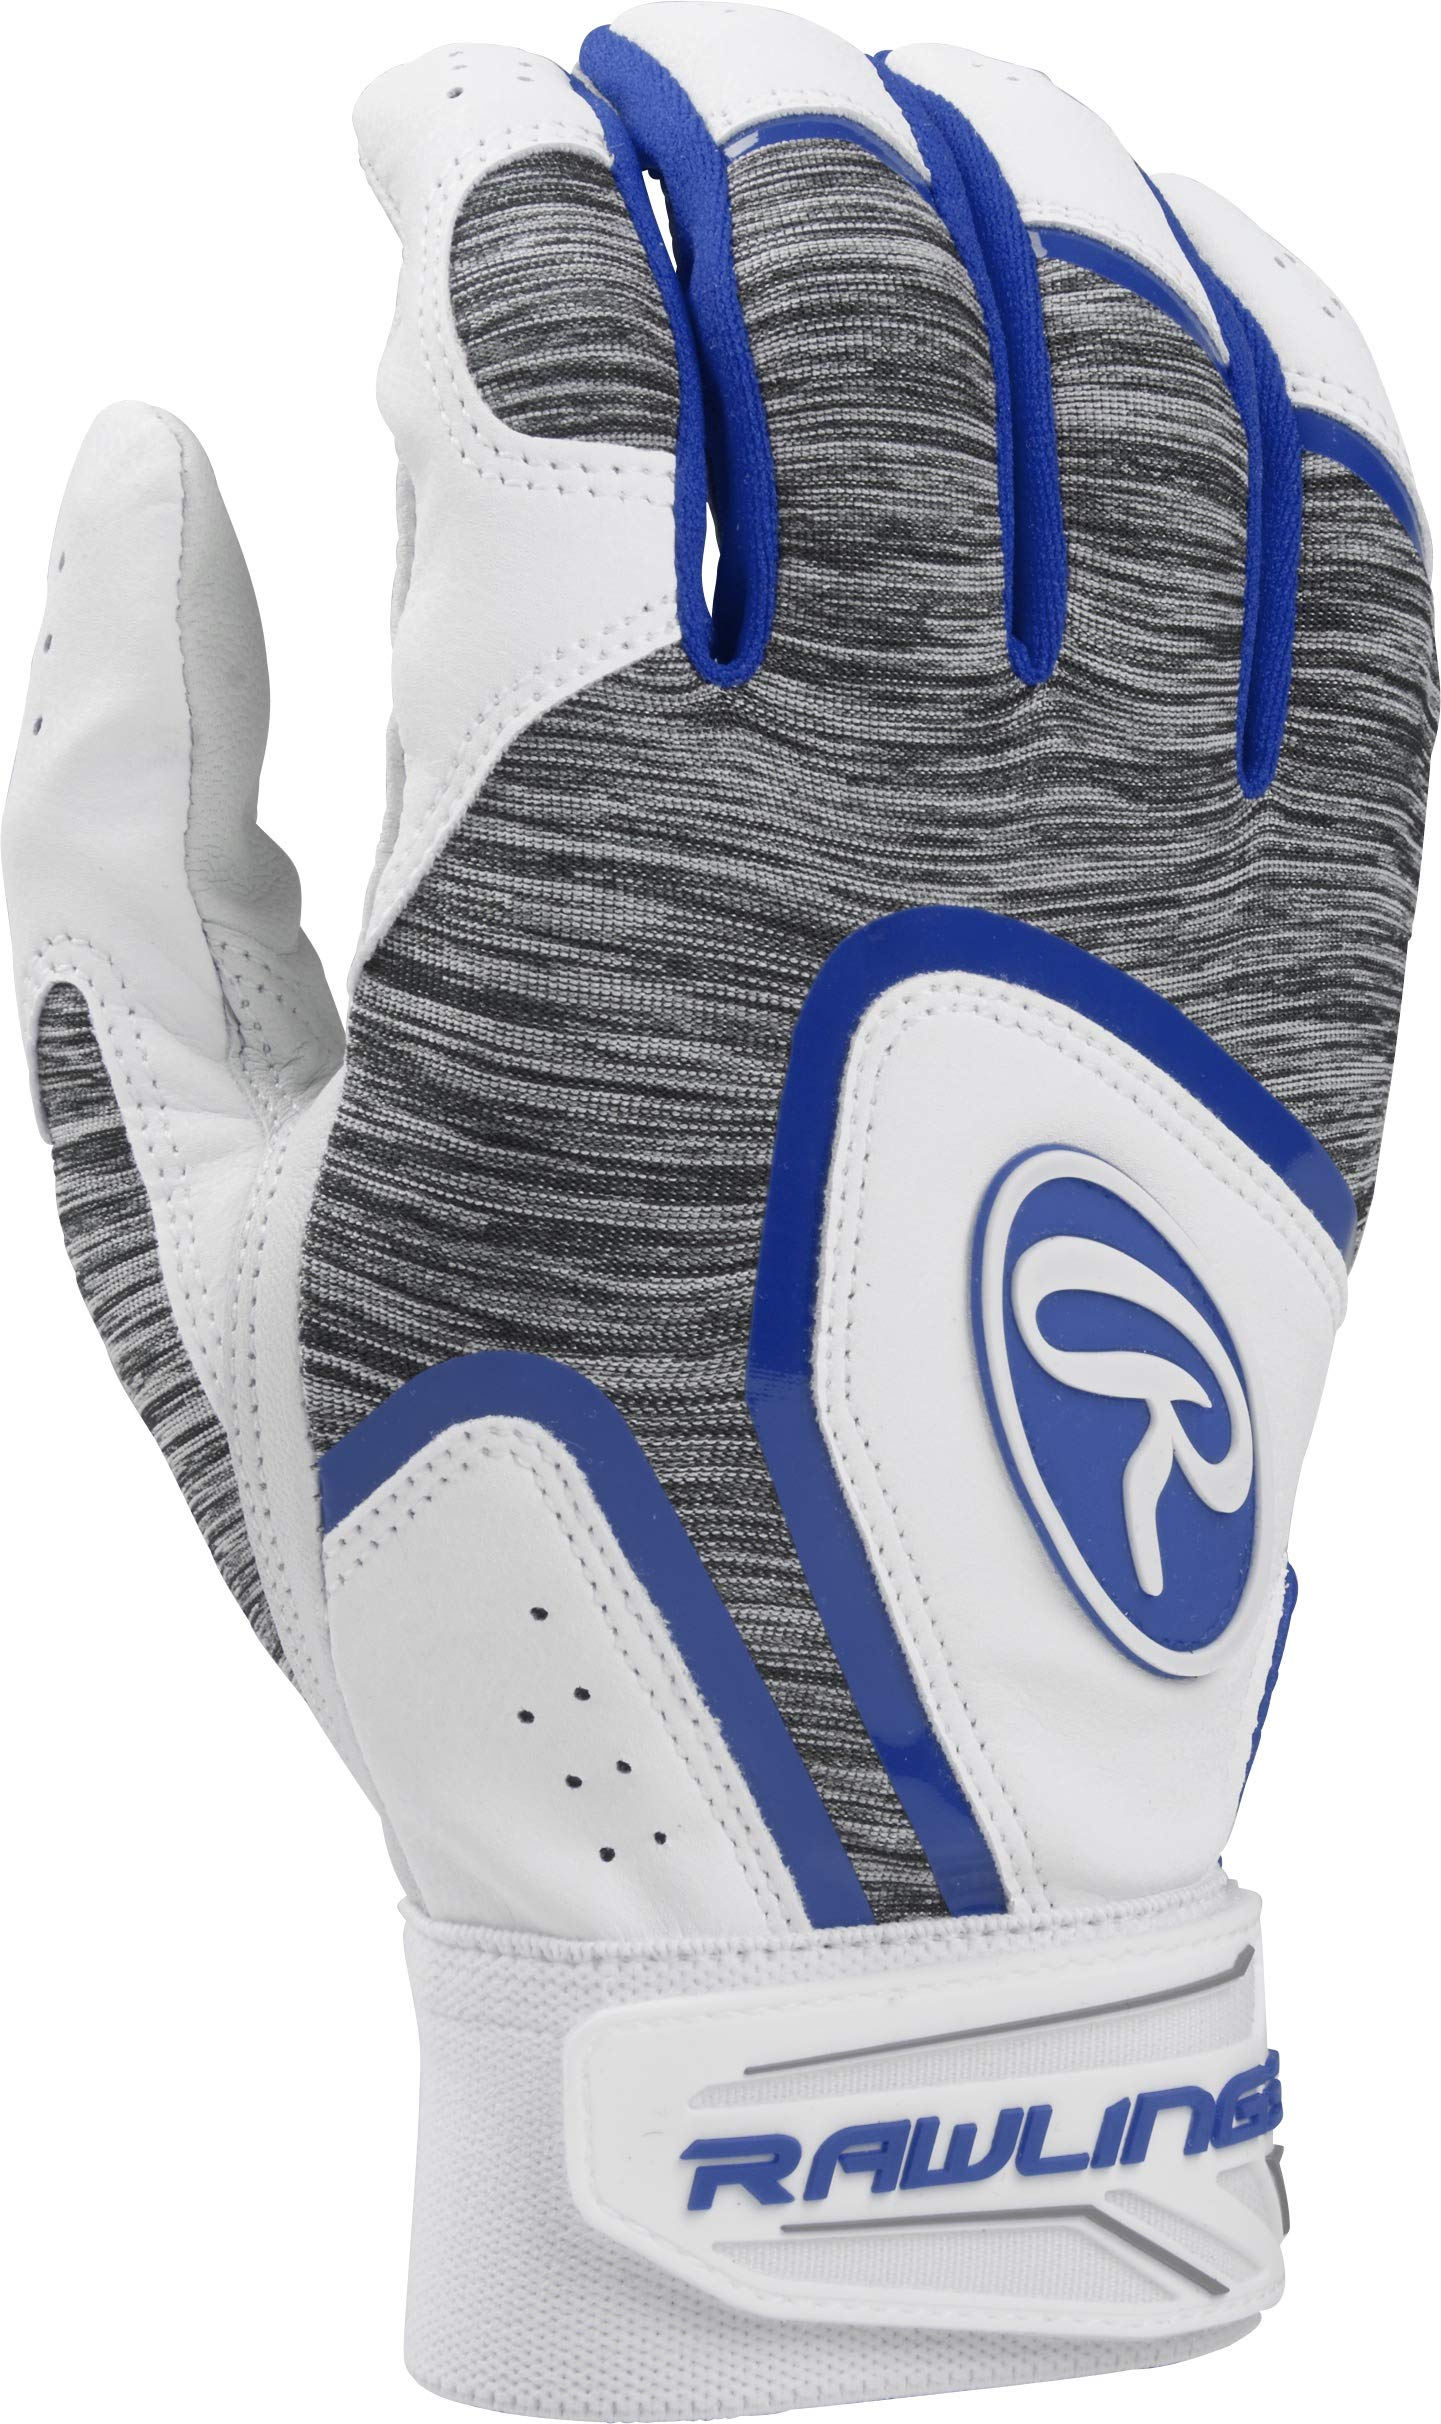 Rawlings 5150WBG-R-91 Rawlngs 5150 Batting Gloves, Royal by Rawlings